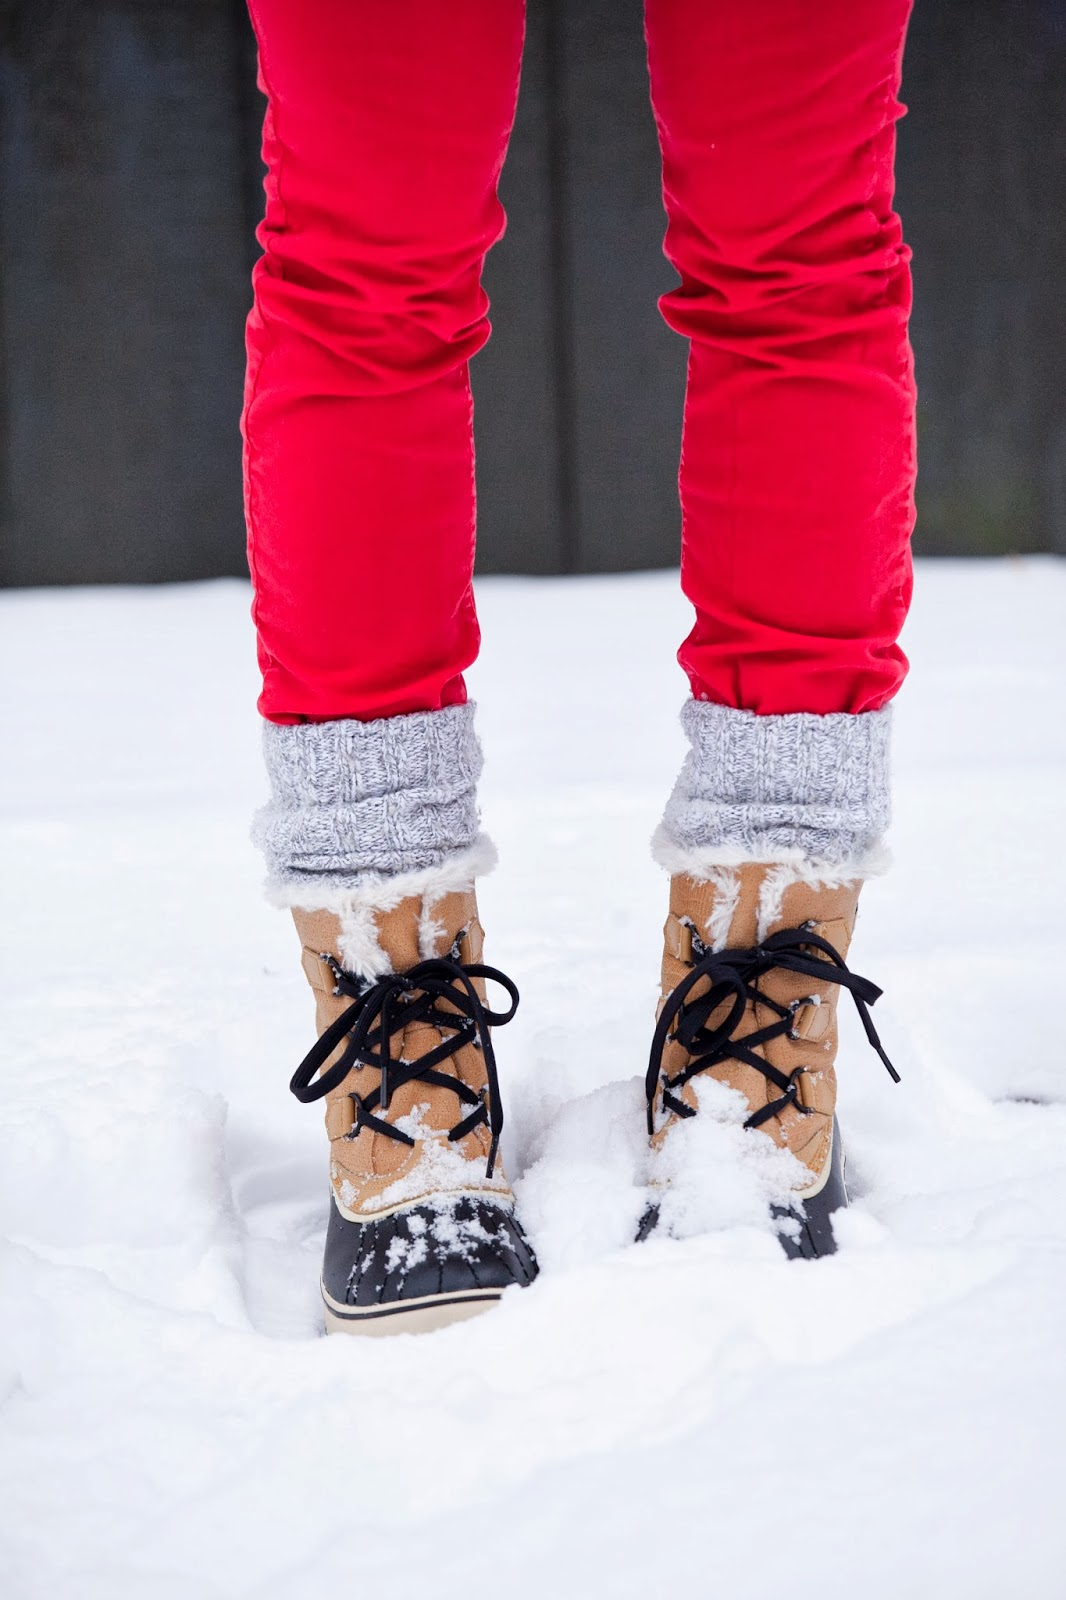 sorels-wool-socks-red-skinny-jeans